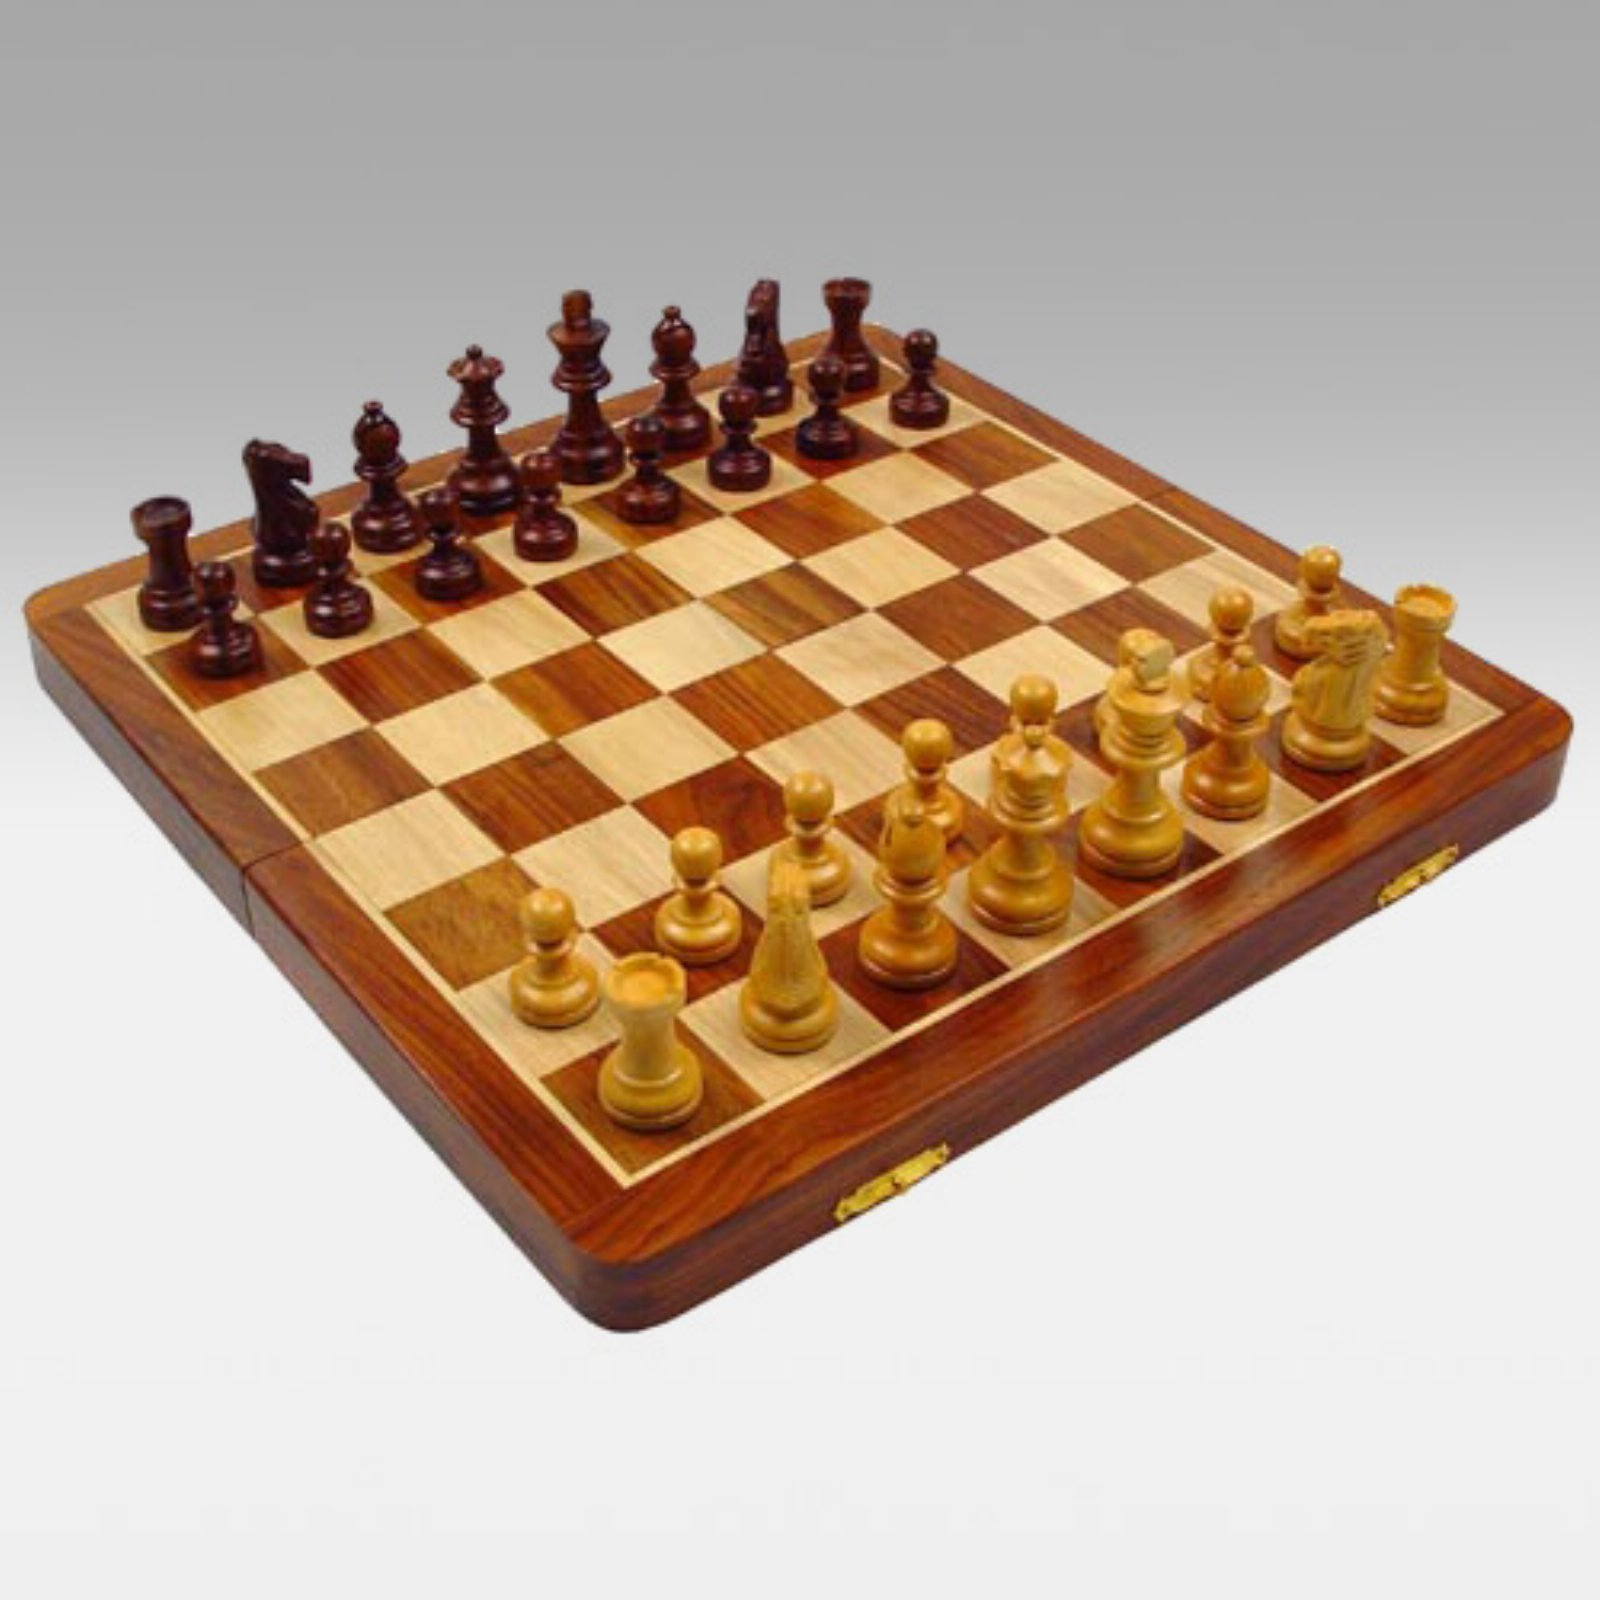 Polished Walnut Magnetic Folding Chess Set by Cambor Games